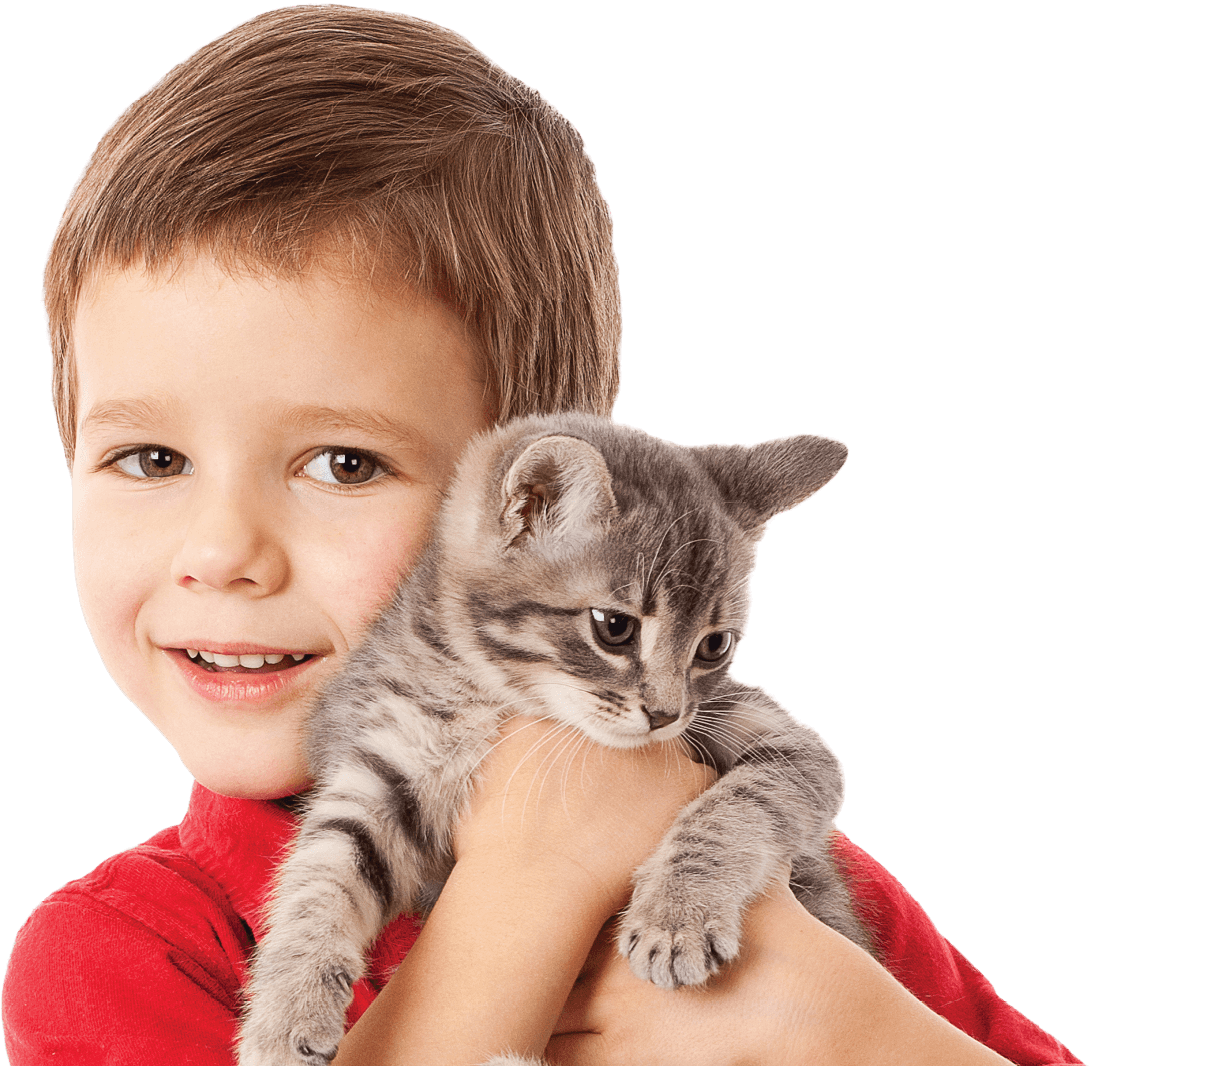 Kid with kitten